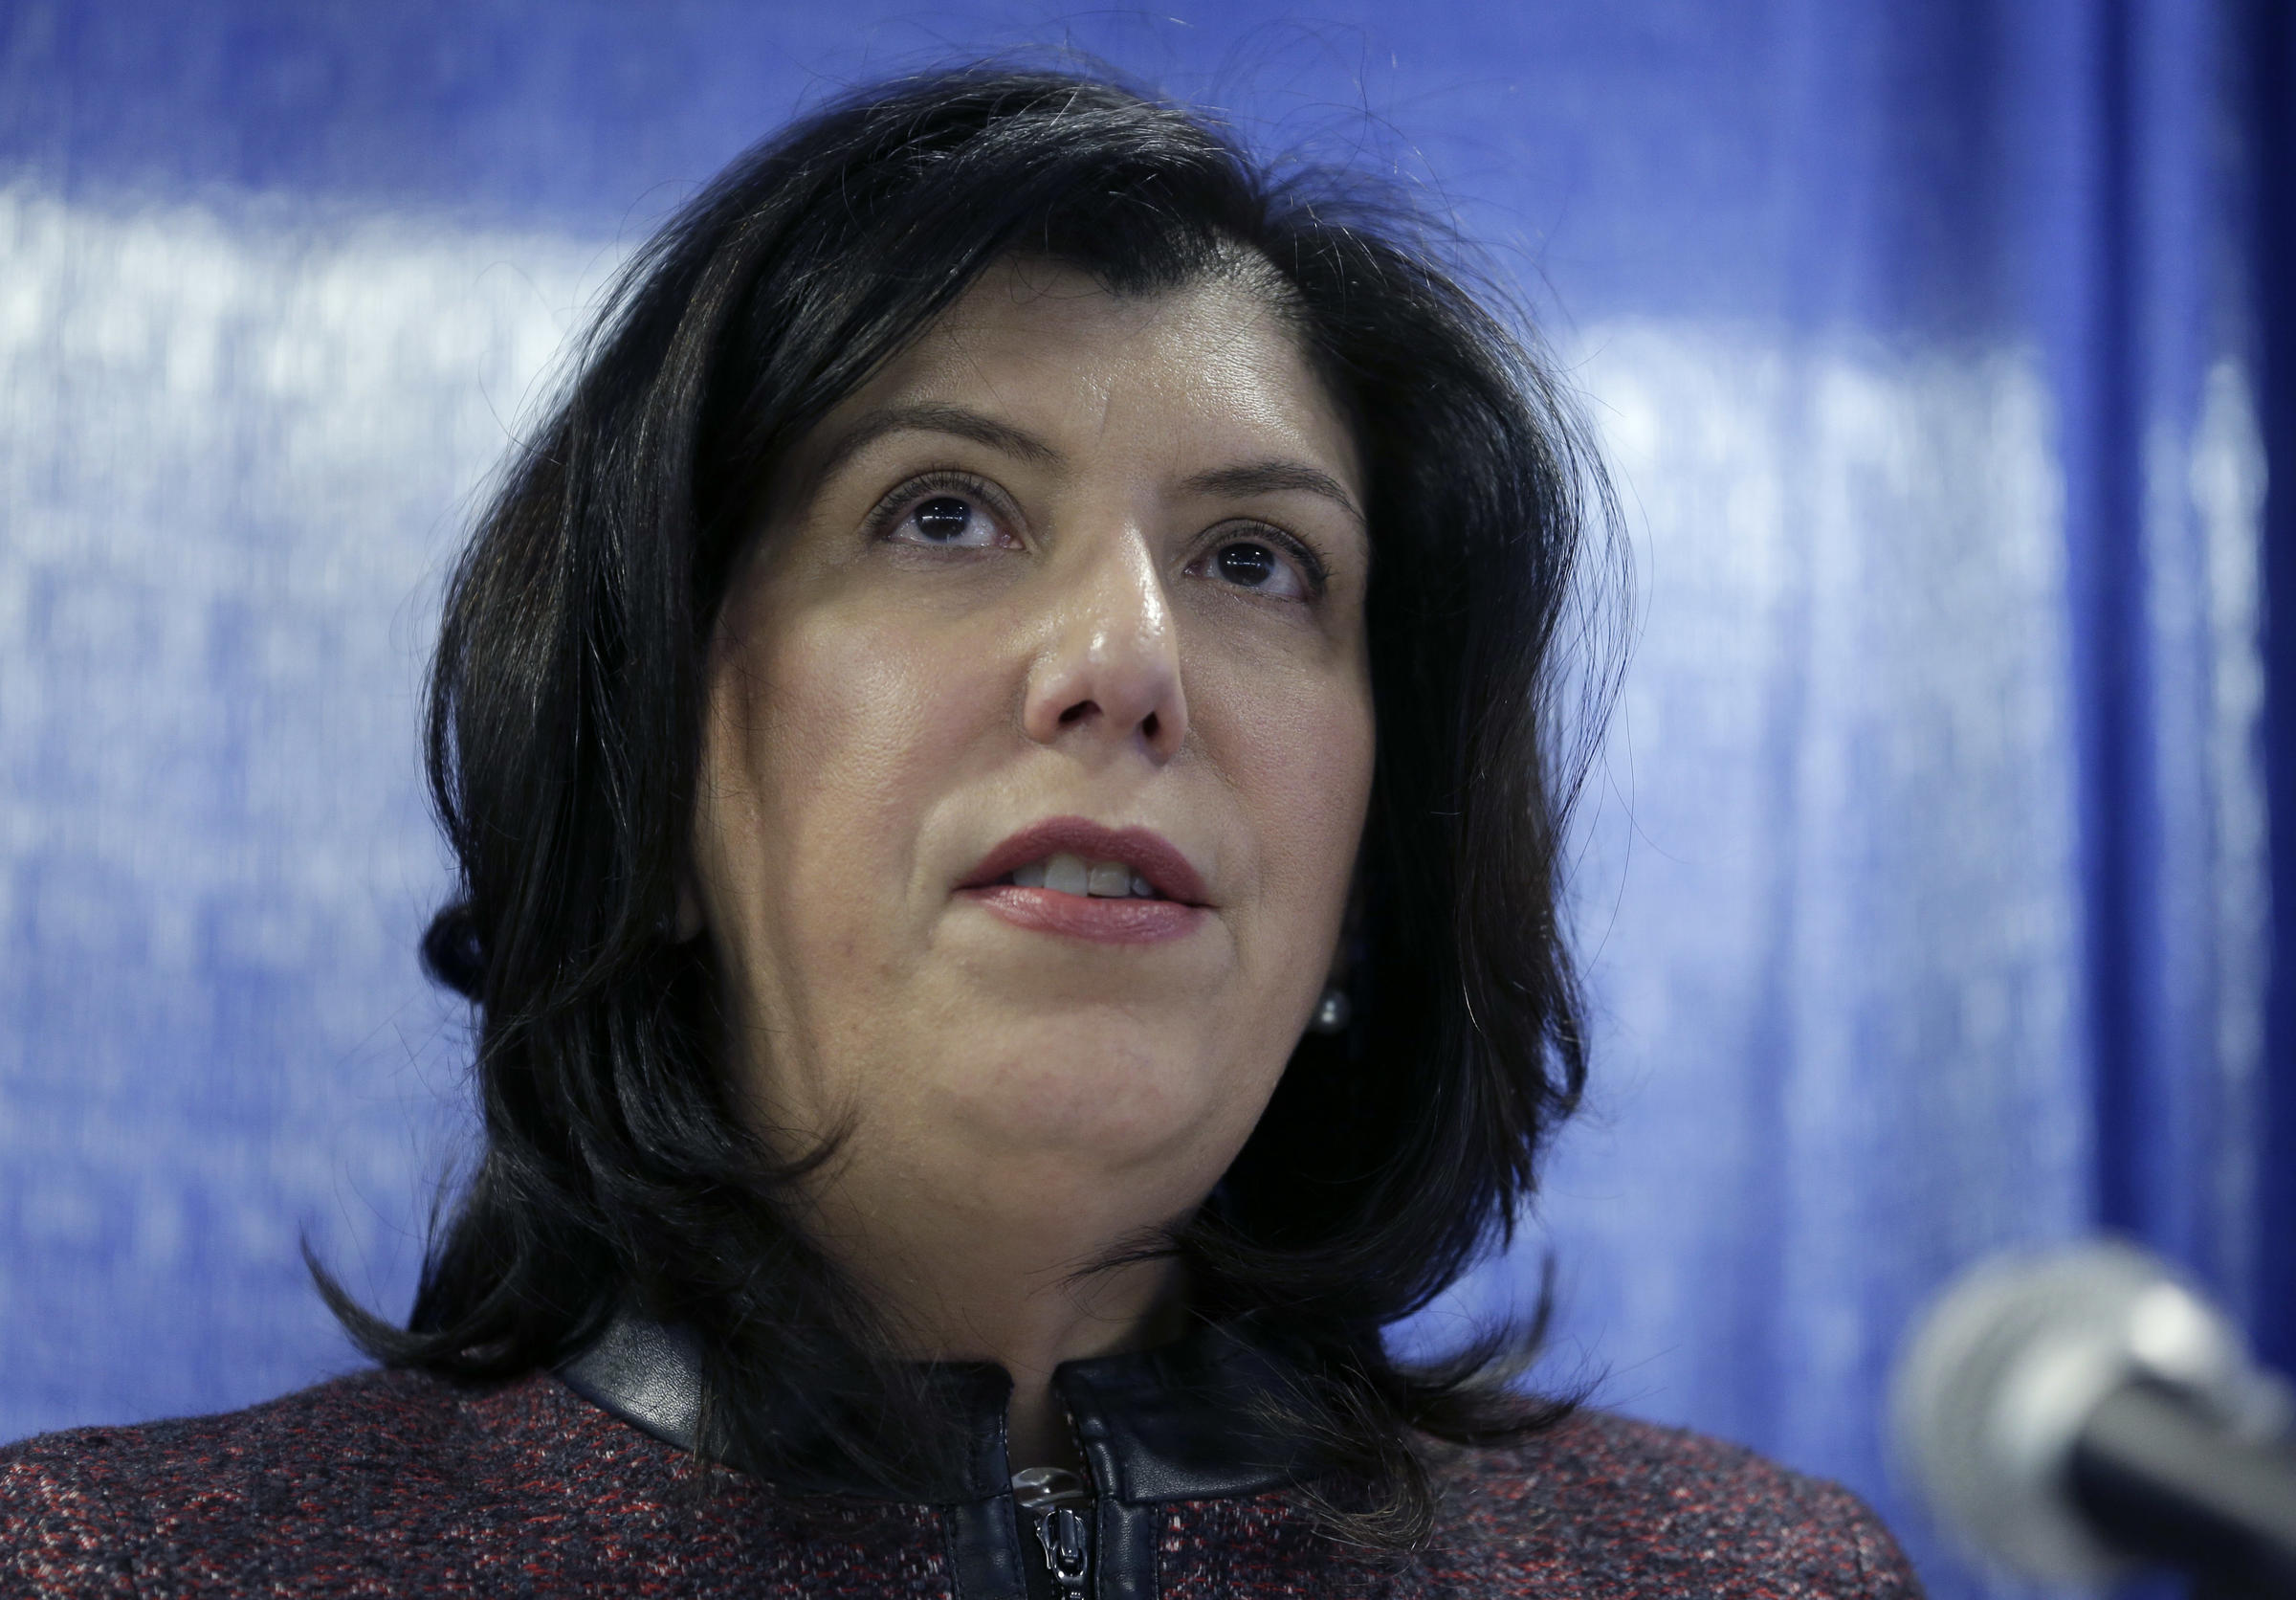 Nassau County District Attorney Madeline Singas speaks to reporters during a news conference in Mineola N.Y. in January